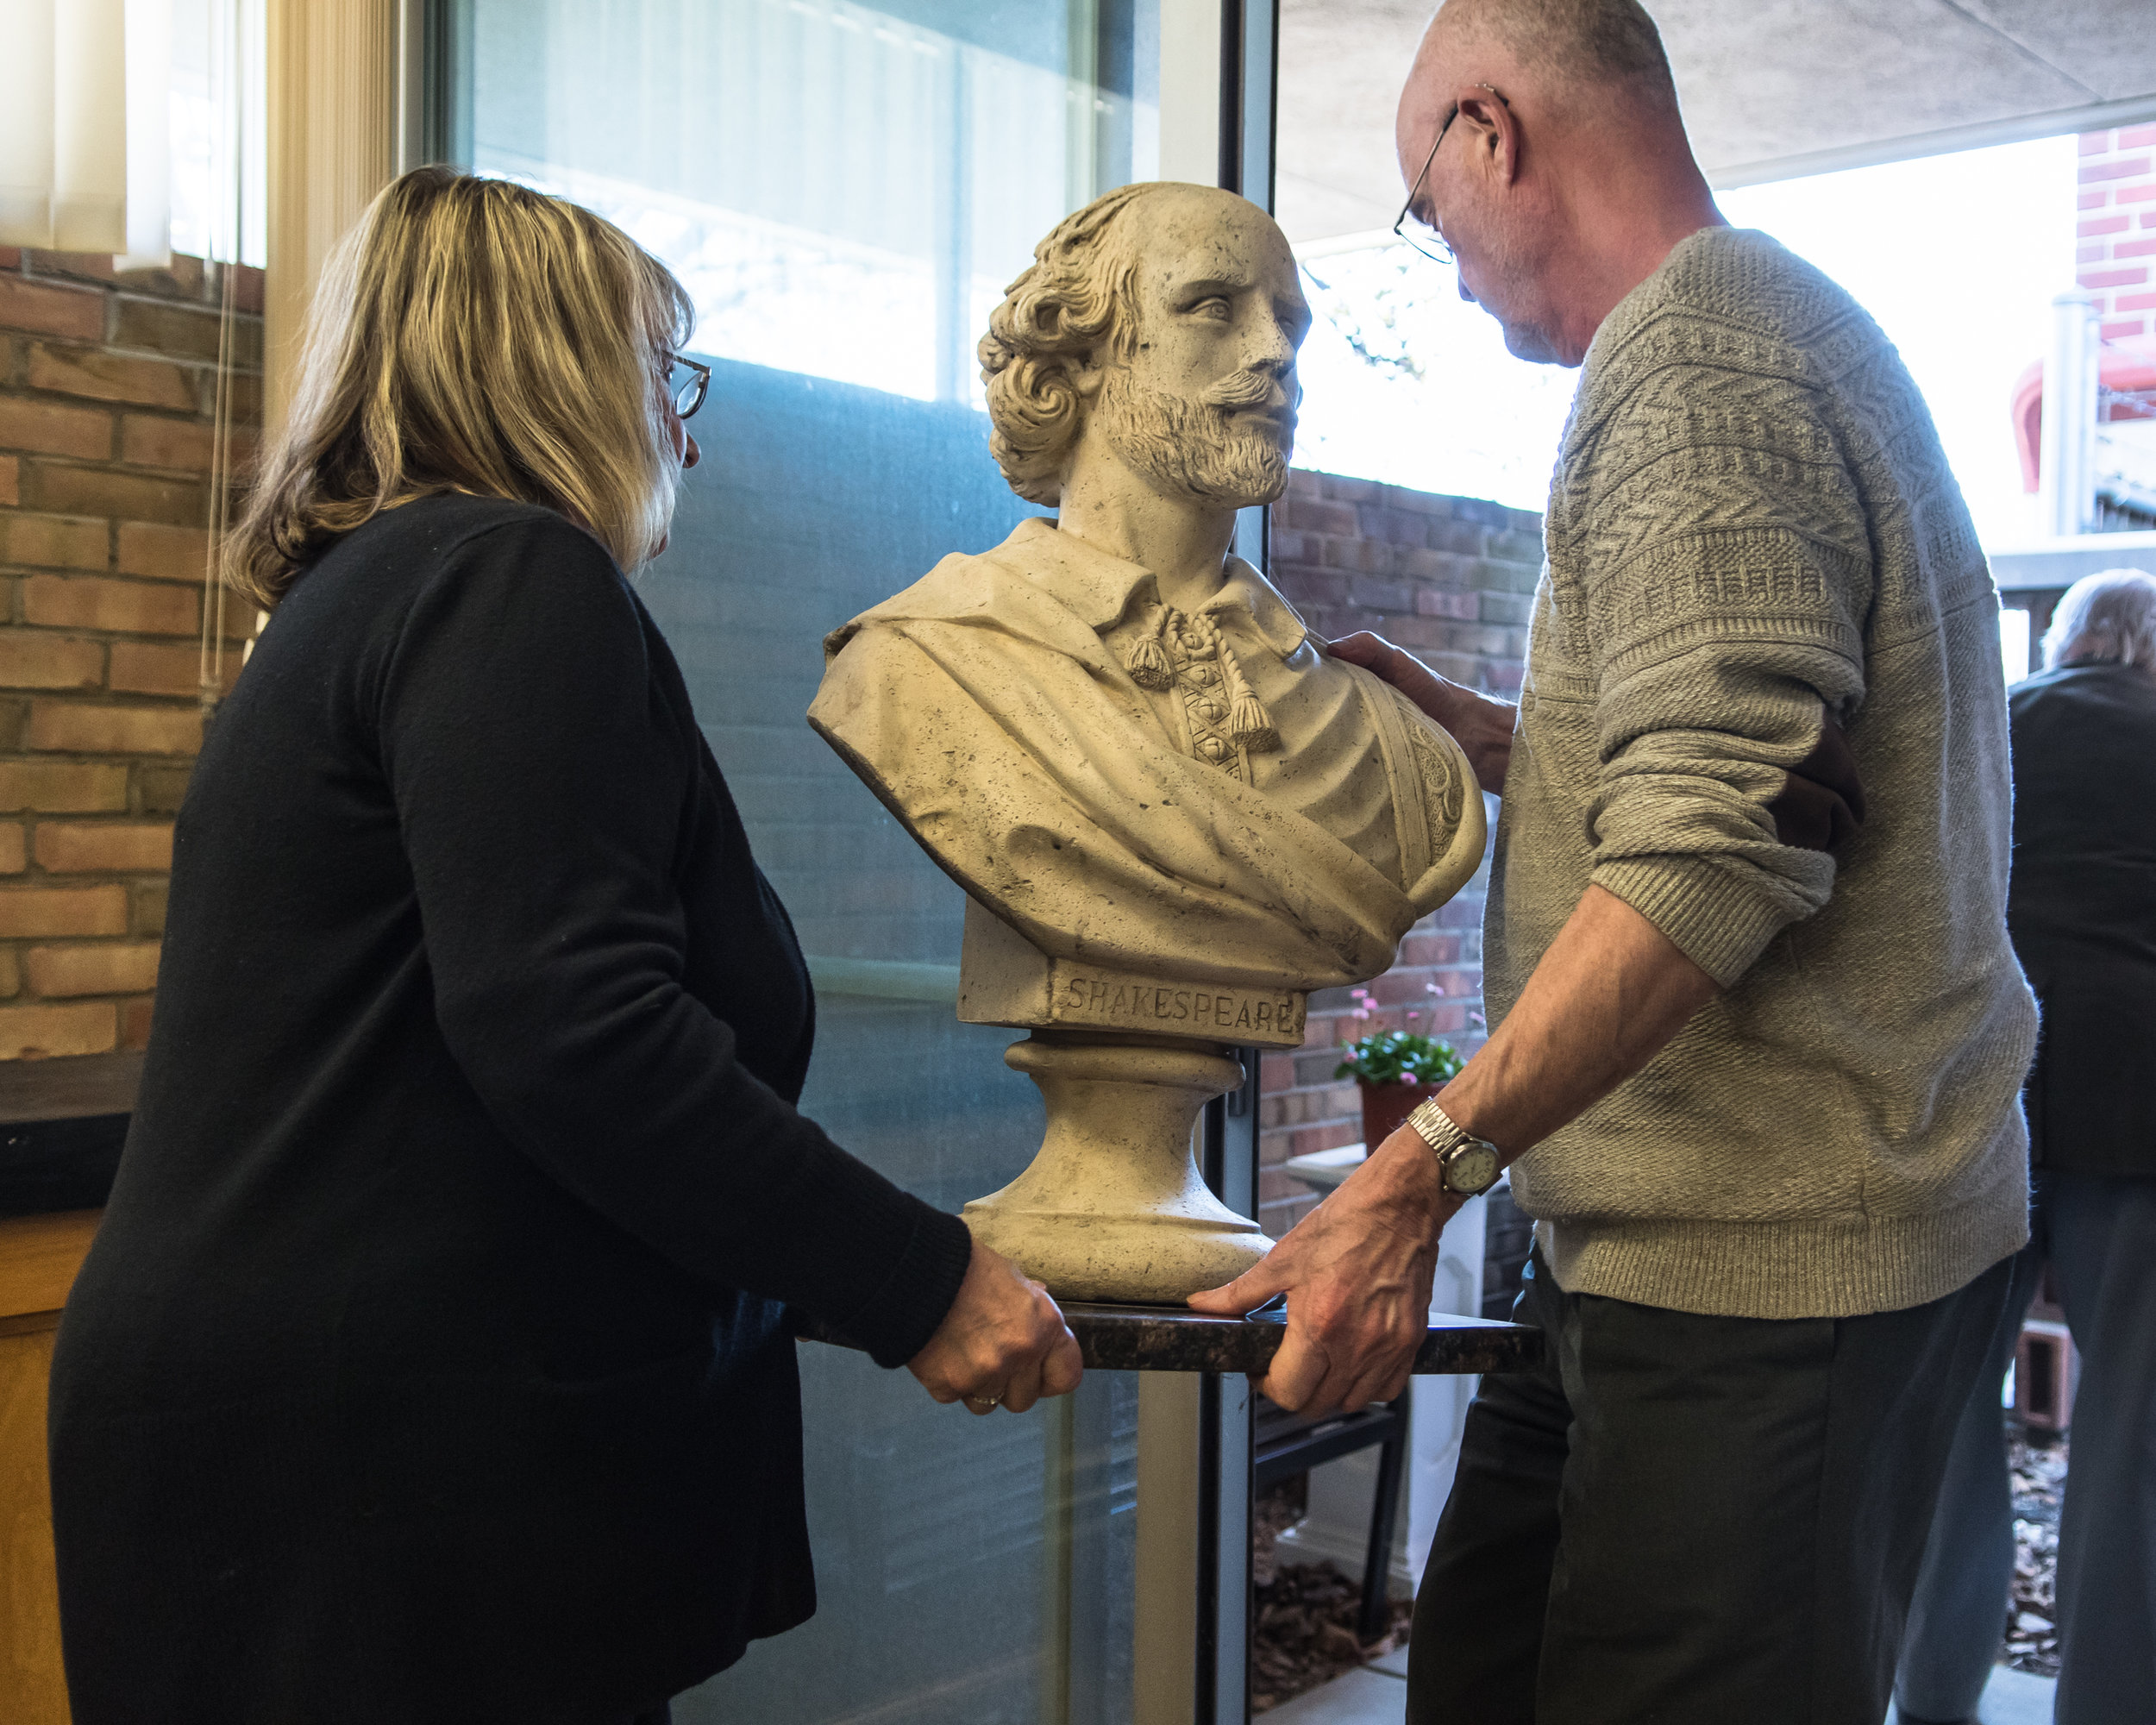 Kay Gregor of the Racine Literary Council and Jerry Belland ceremonially move a bust of Shakespeare outside to it's spot in the Audrey Onstad Shannon Memorial Poets Corner of the Racine Literary Council during their celebration for Shakespeare's Birthday on Sunday.